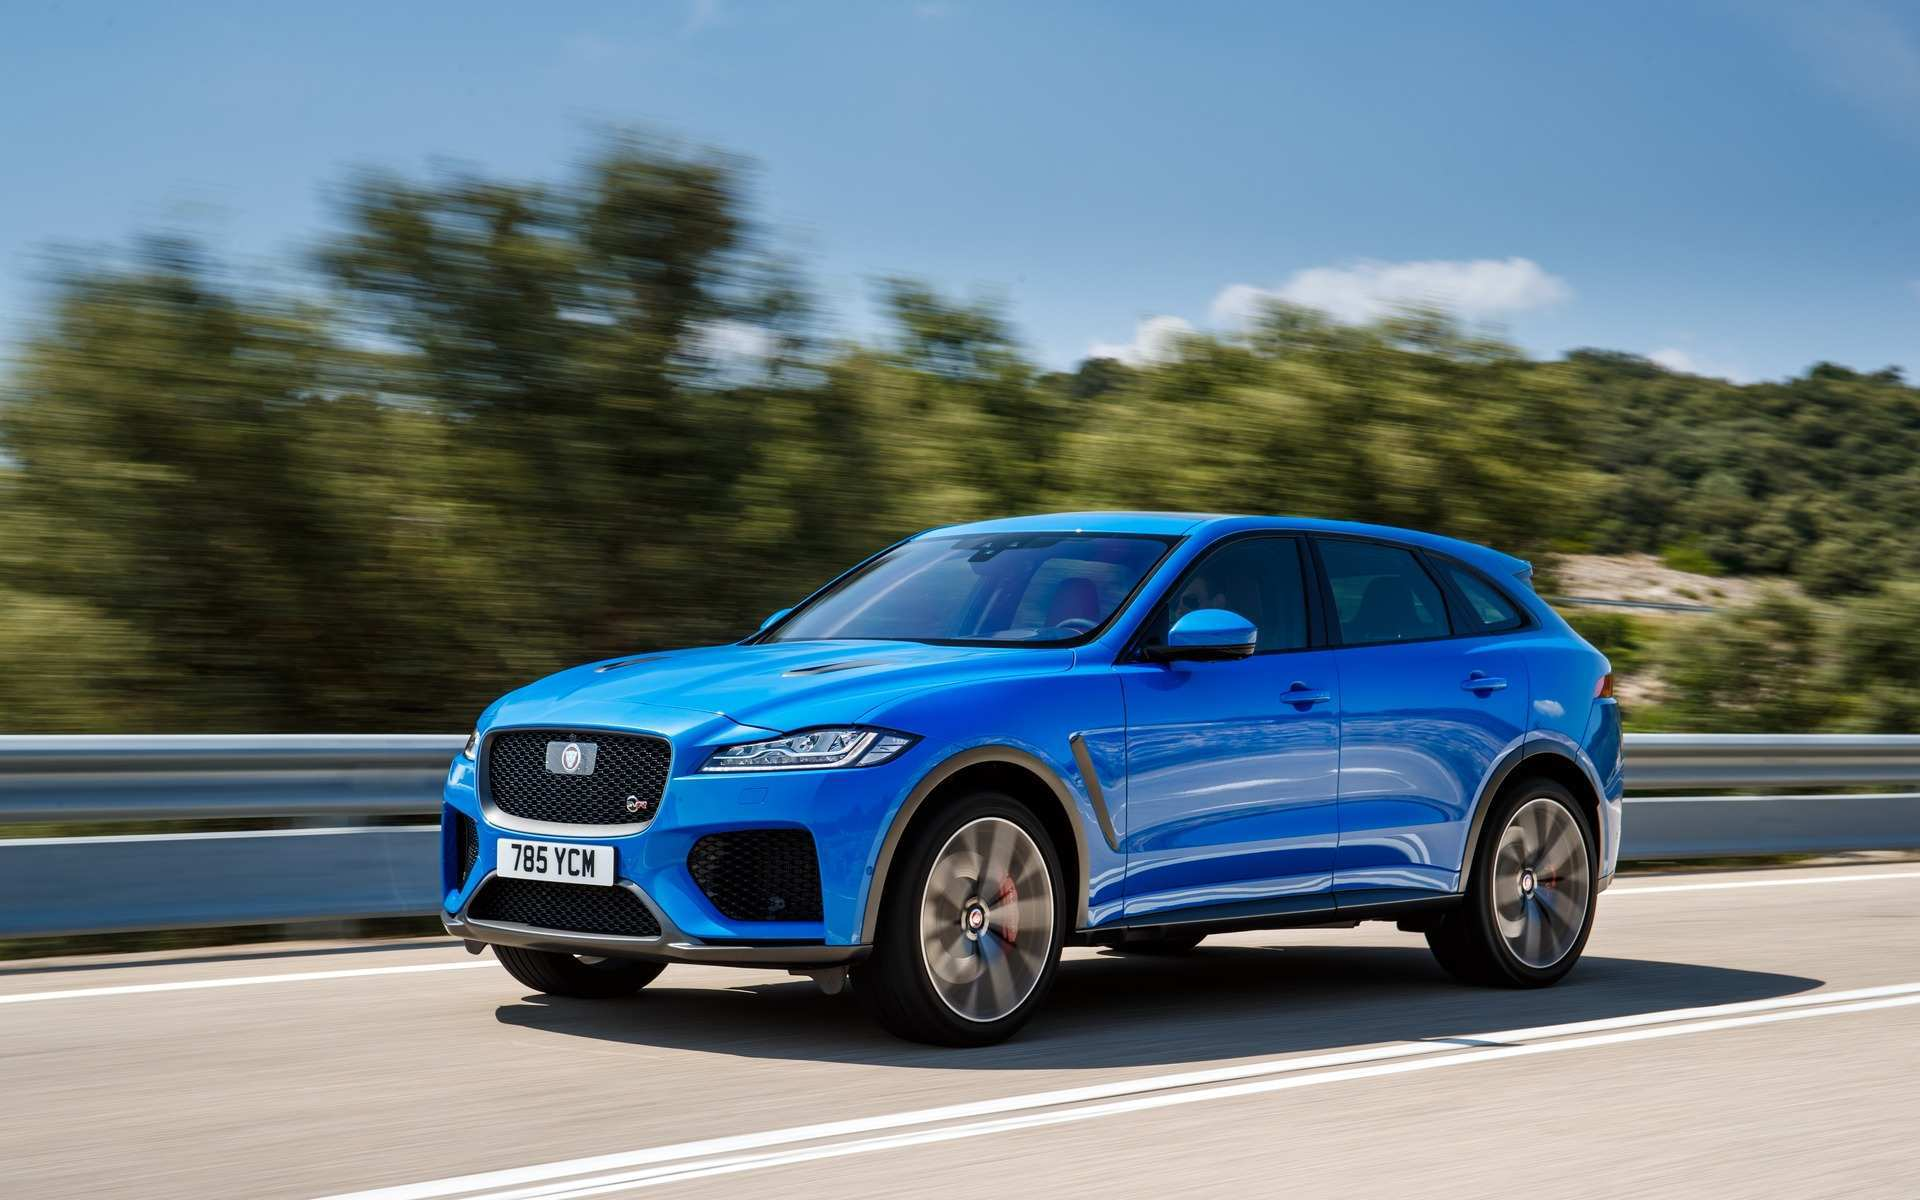 83 Great 2020 Jaguar F Pace Changes Redesign and Concept for 2020 Jaguar F Pace Changes